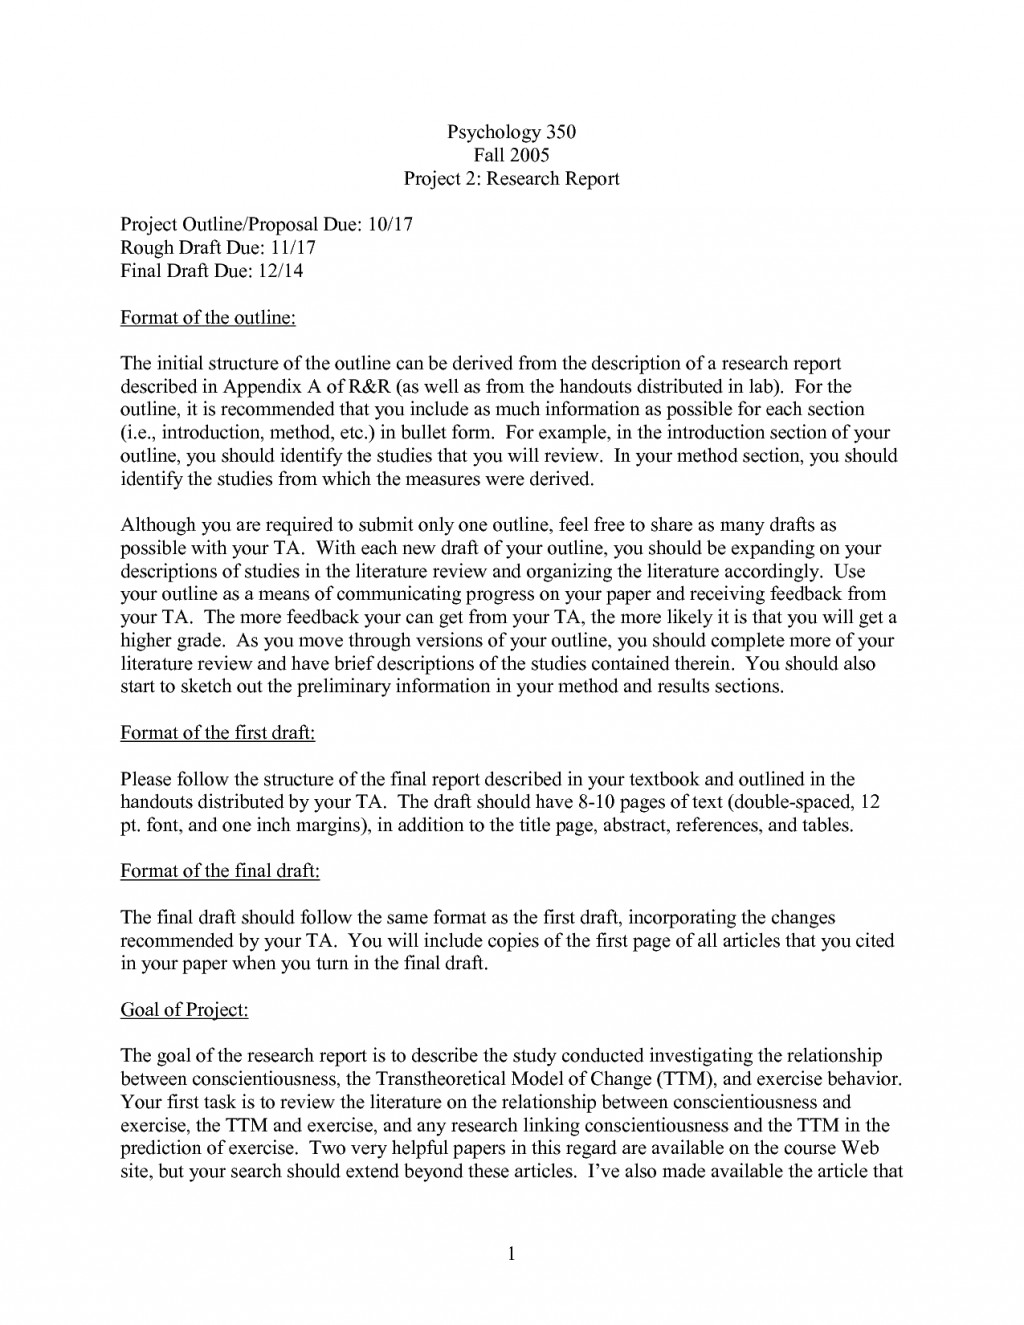 013 Researchs For Psychology Essay About How To Write The Guide Writing Topics Argumentative20 1024x1325 Fascinating Research Papers Paper Educational Types Of Large